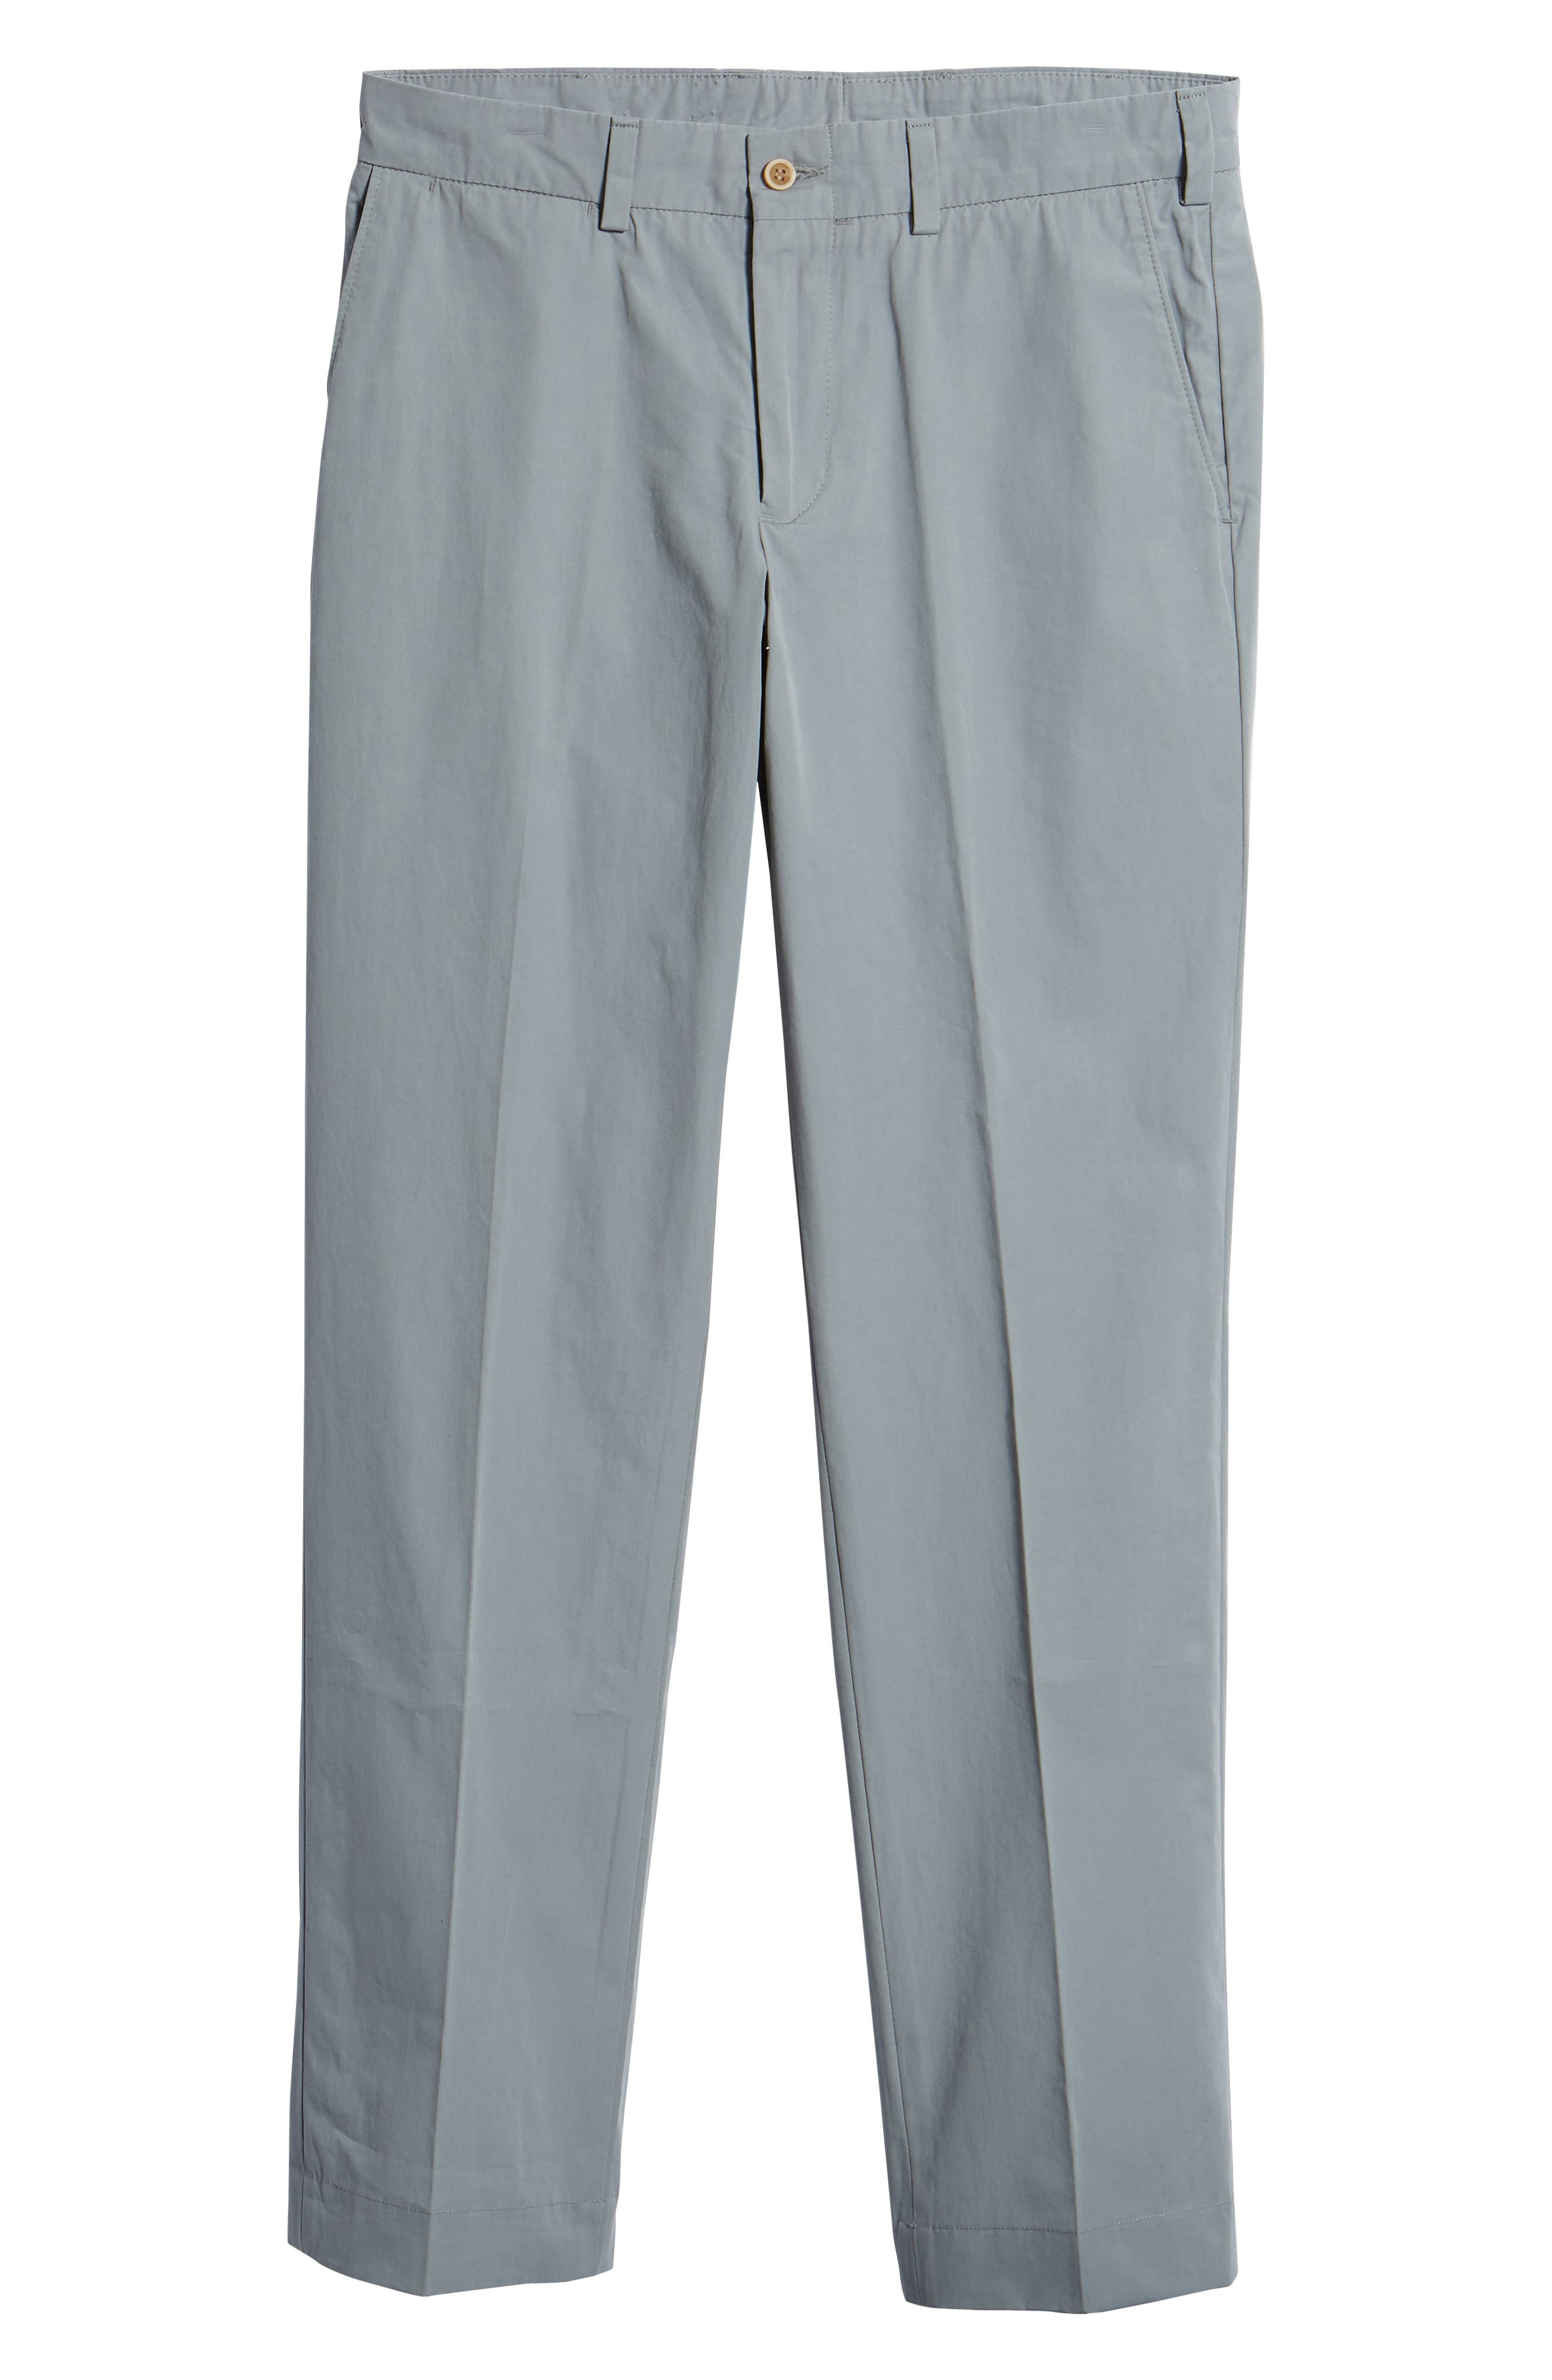 M3 Straight Fit Flat Front Tropical Poplin Pants,                             Alternate thumbnail 6, color,                             Nickel